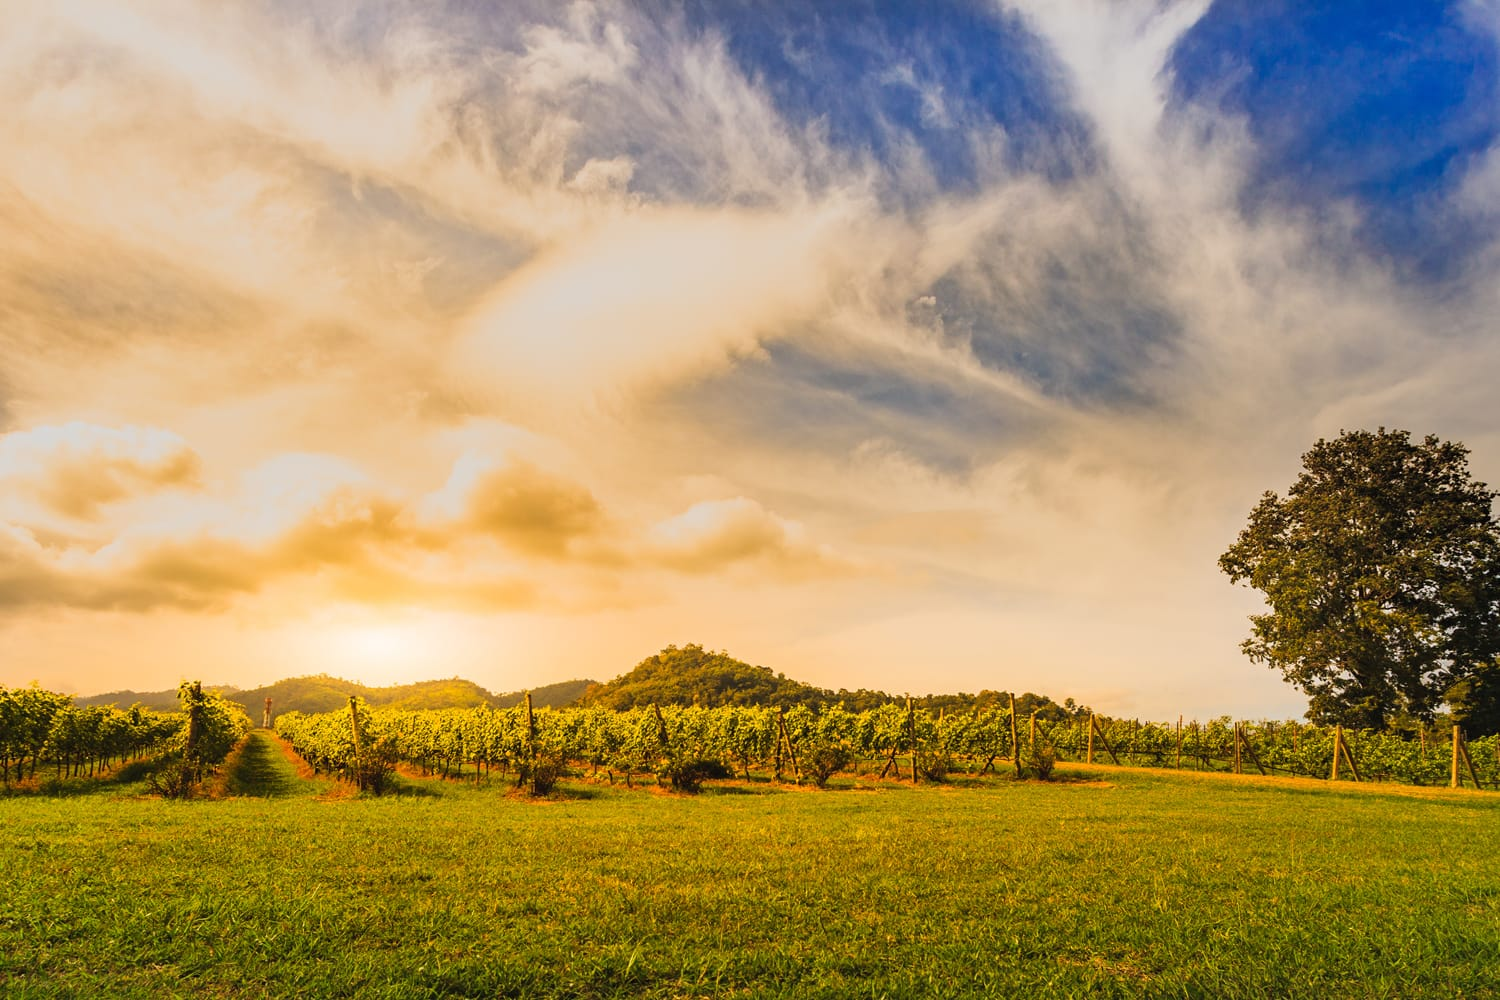 Sunset over Khao Yai Vineyards in Thailand